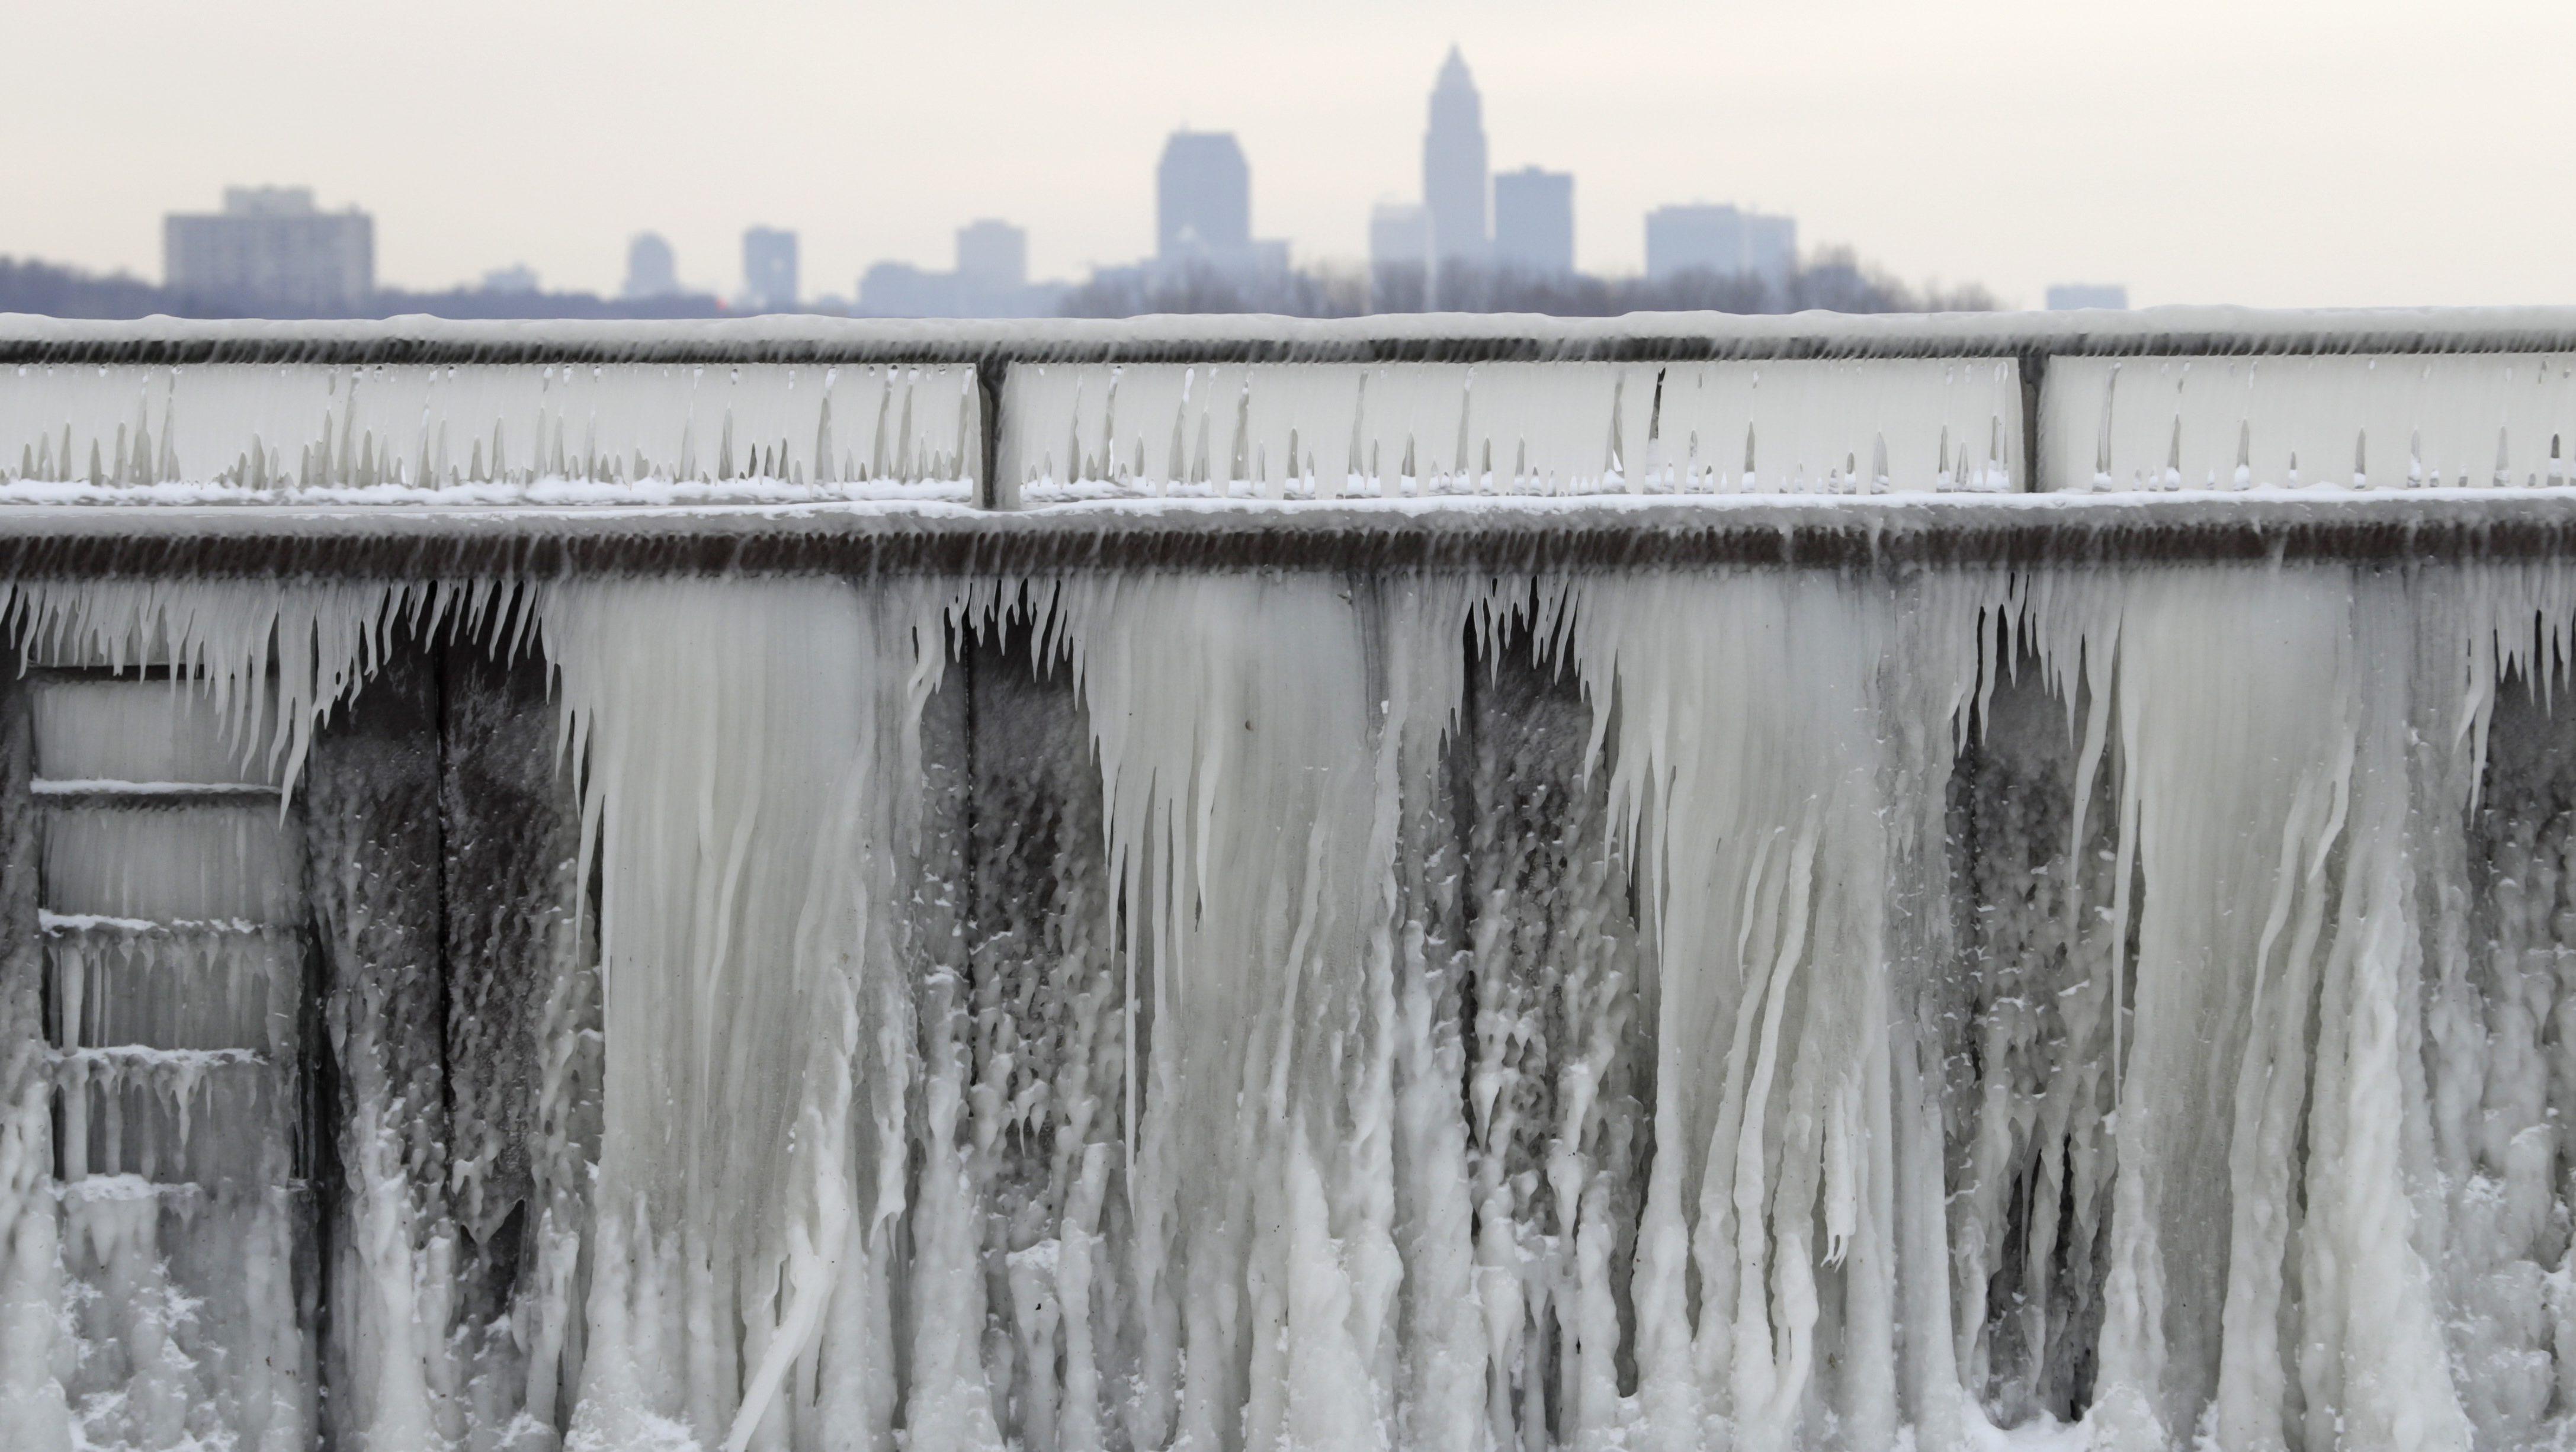 ce forms on a breakwall along Lake Erie with the city of Cleveland in the background, Wednesday, Jan. 3, 2018, in Cleveland. Dangerously cold temperatures have gripped wide swaths of the U.S. from Texas to New England.